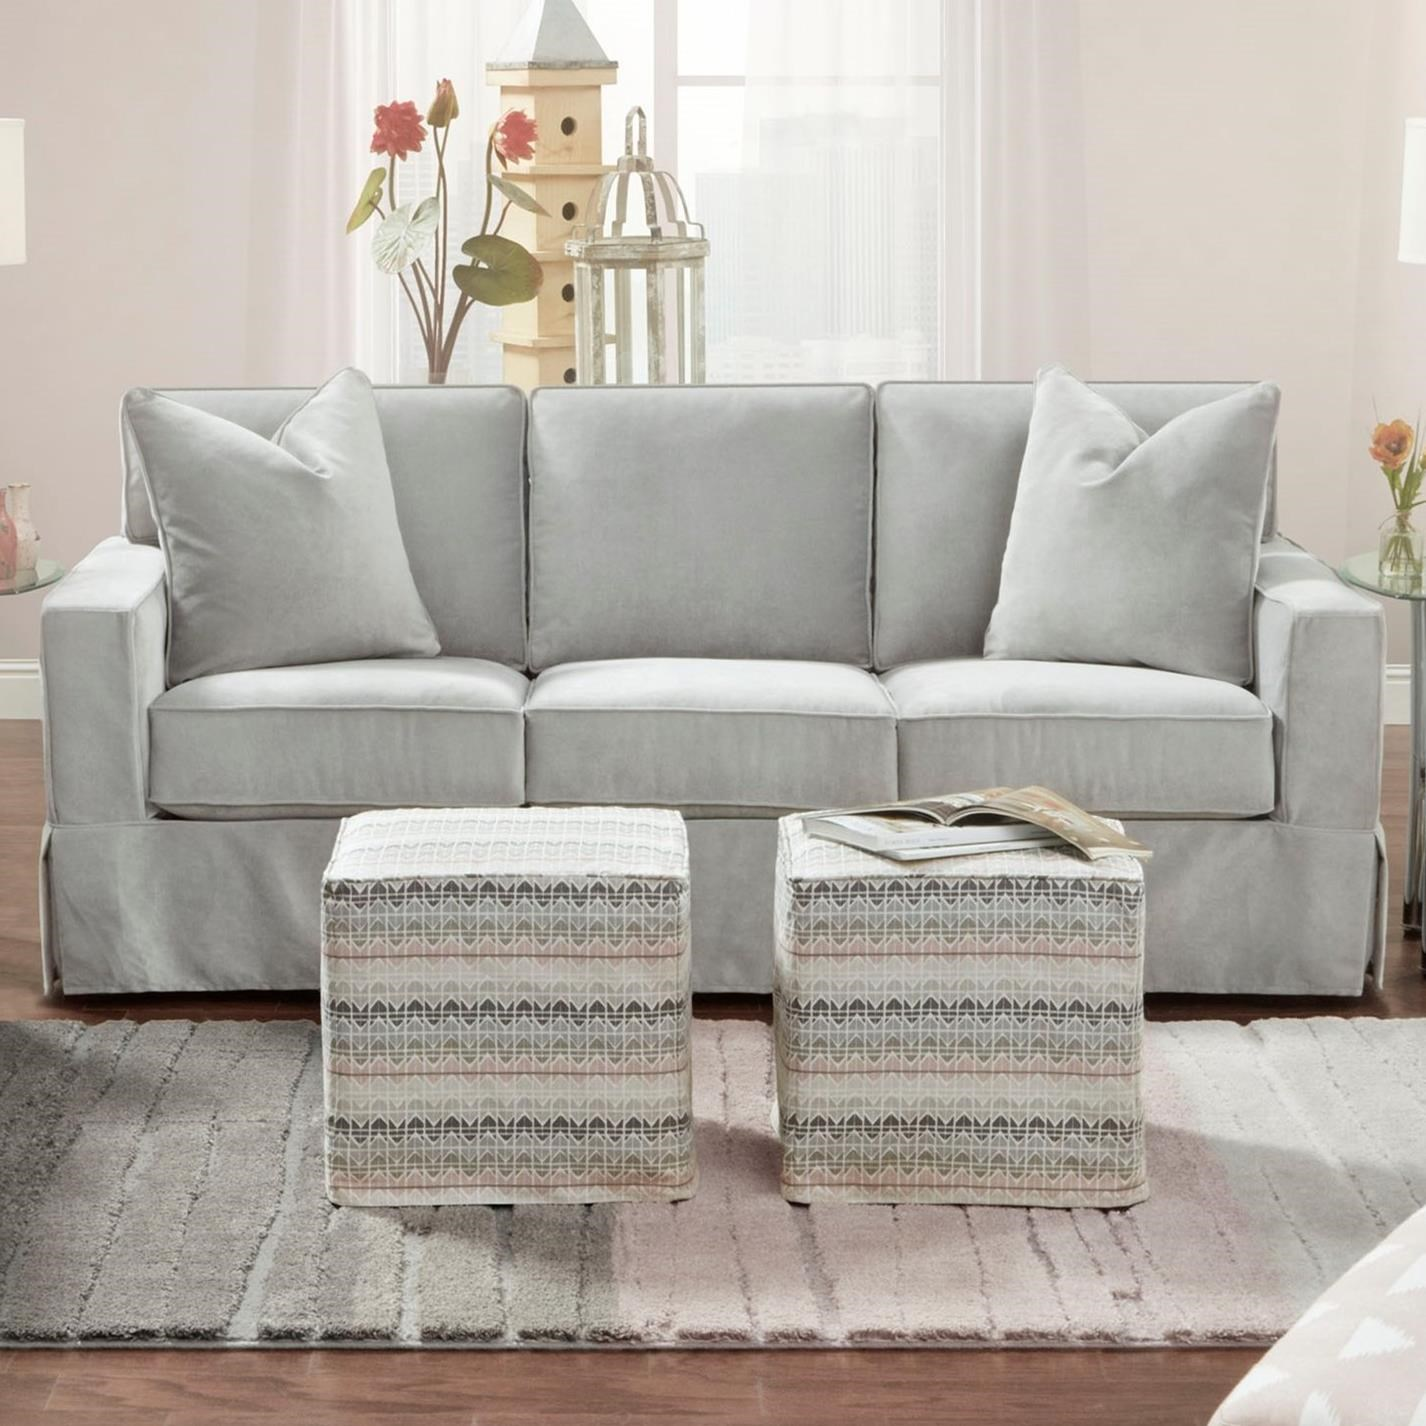 less solid seats loveseat couch for overstock chair slipcover color home stretch sofa slipcovers subcat cover grey garden